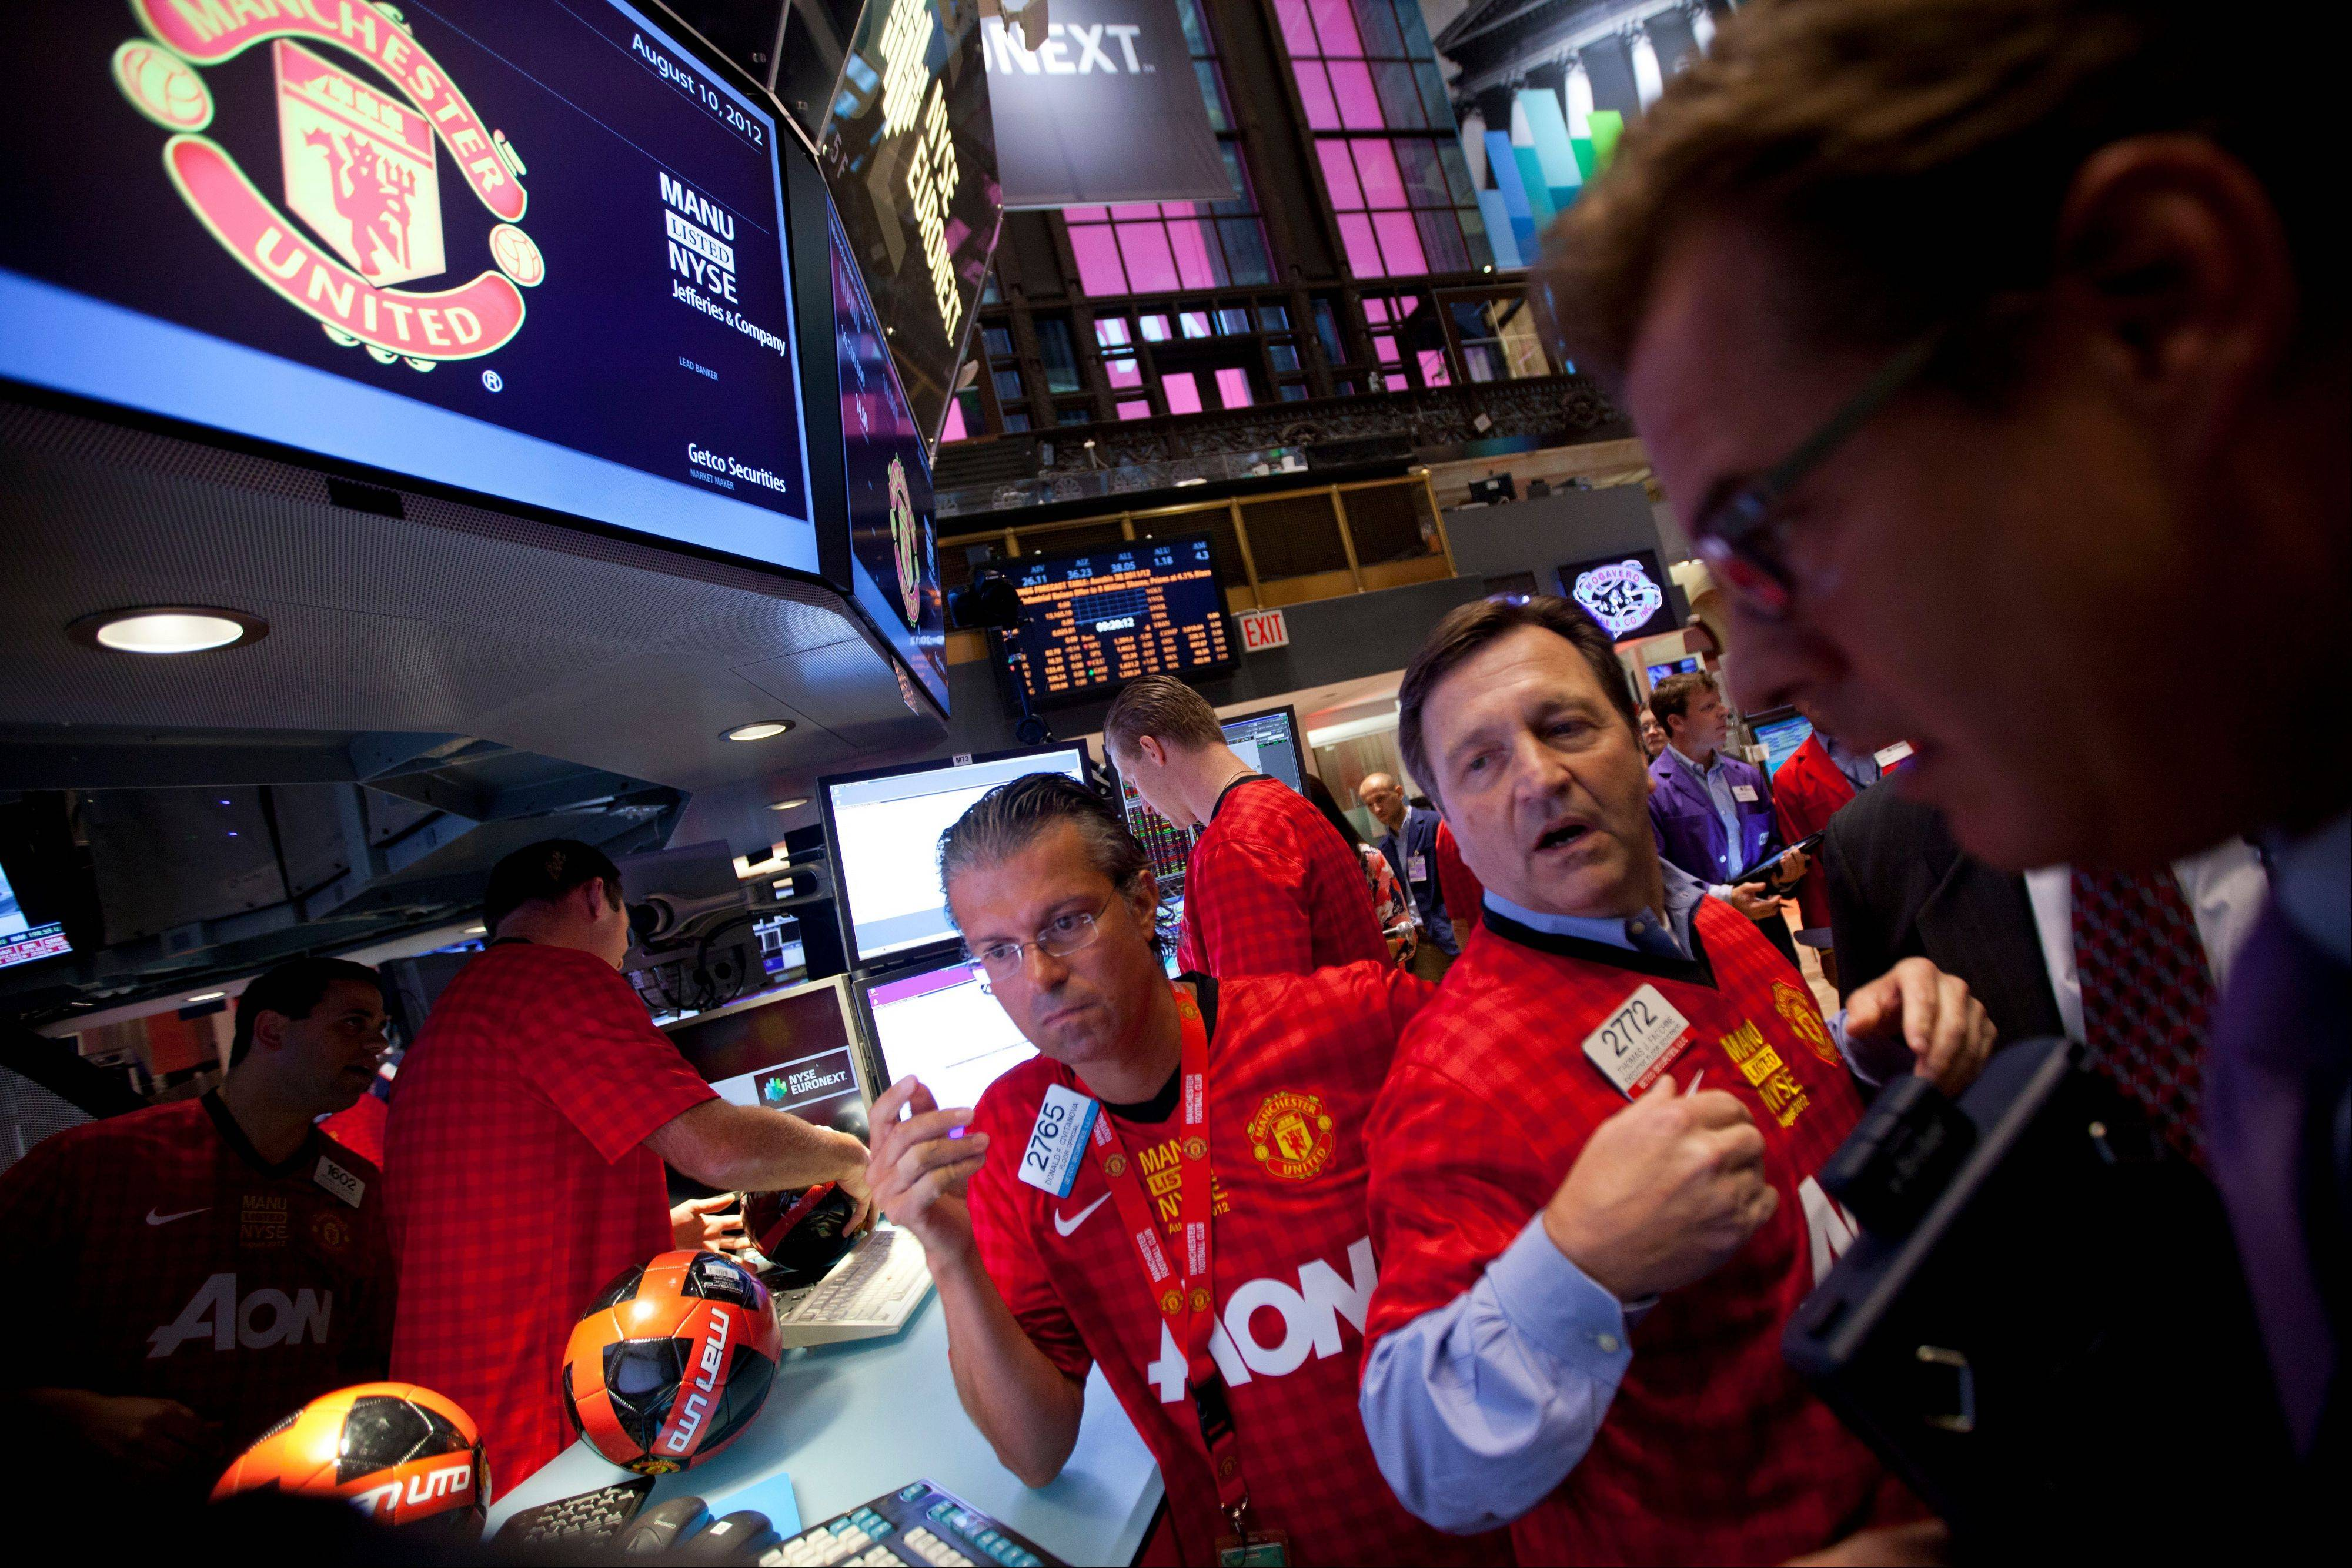 Traders work while wearing Manchester United jerseys on the floor of the New York Stock Exchange on Friday, Aug. 10, 2012 in New York. Shares of soccer club Manchester United made their public debut Friday, edging up slightly as shareholders� enthusiasm for the celebrated team was offset by worry about its debt load and financial performance.